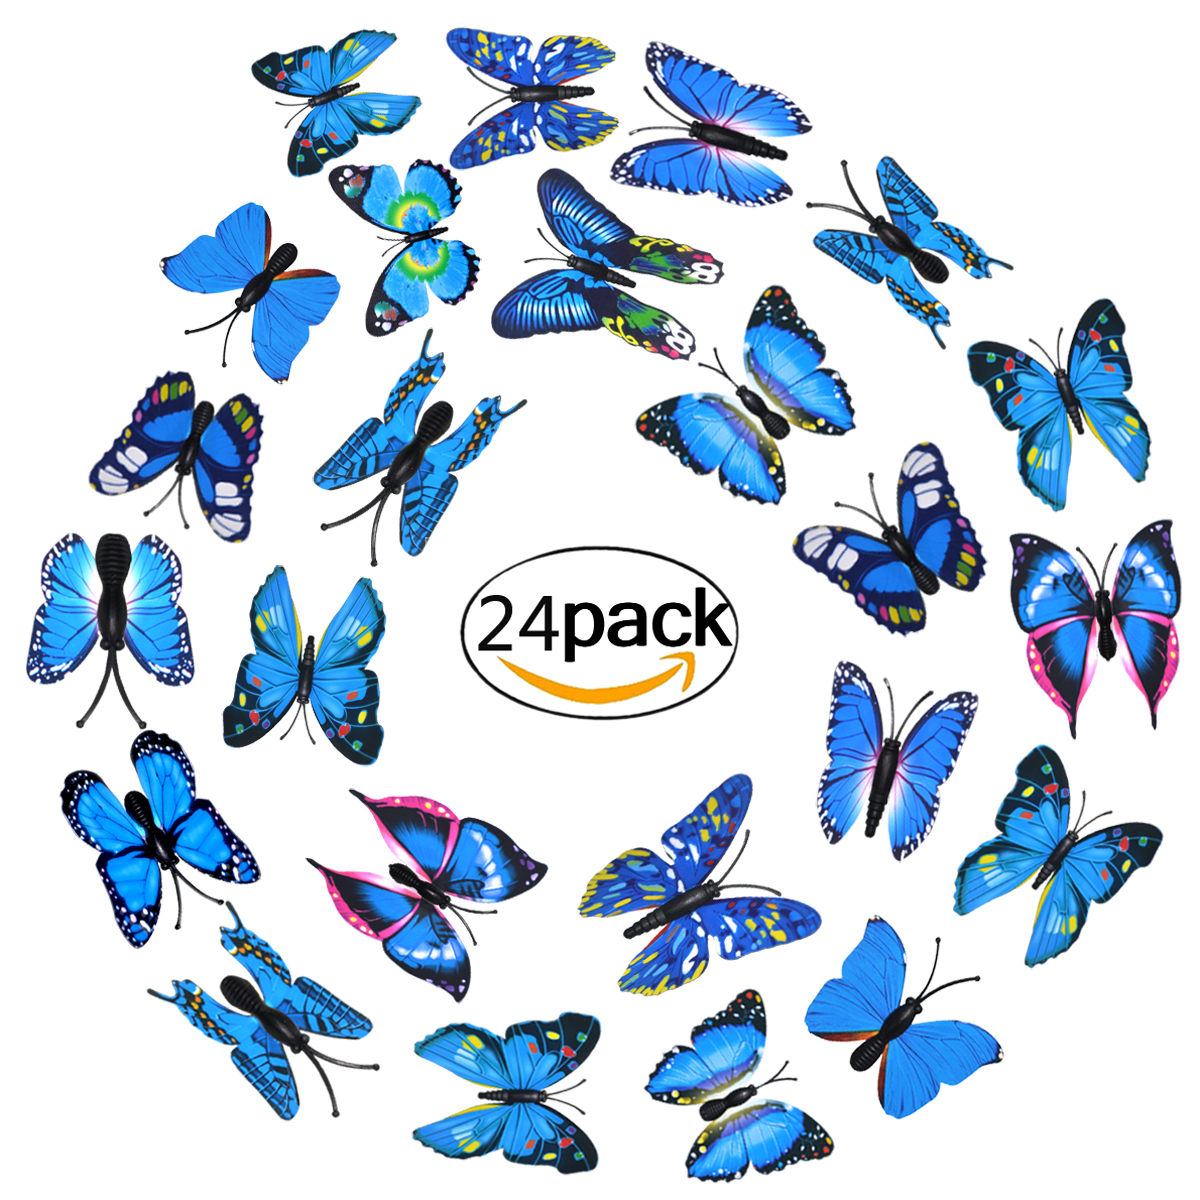 Fridge Magnets, Outgeek 24 Pcs Lovely 3D Butterfly Whiteboard Refrigerator Magnets Wall Stickers for Home Art Decor